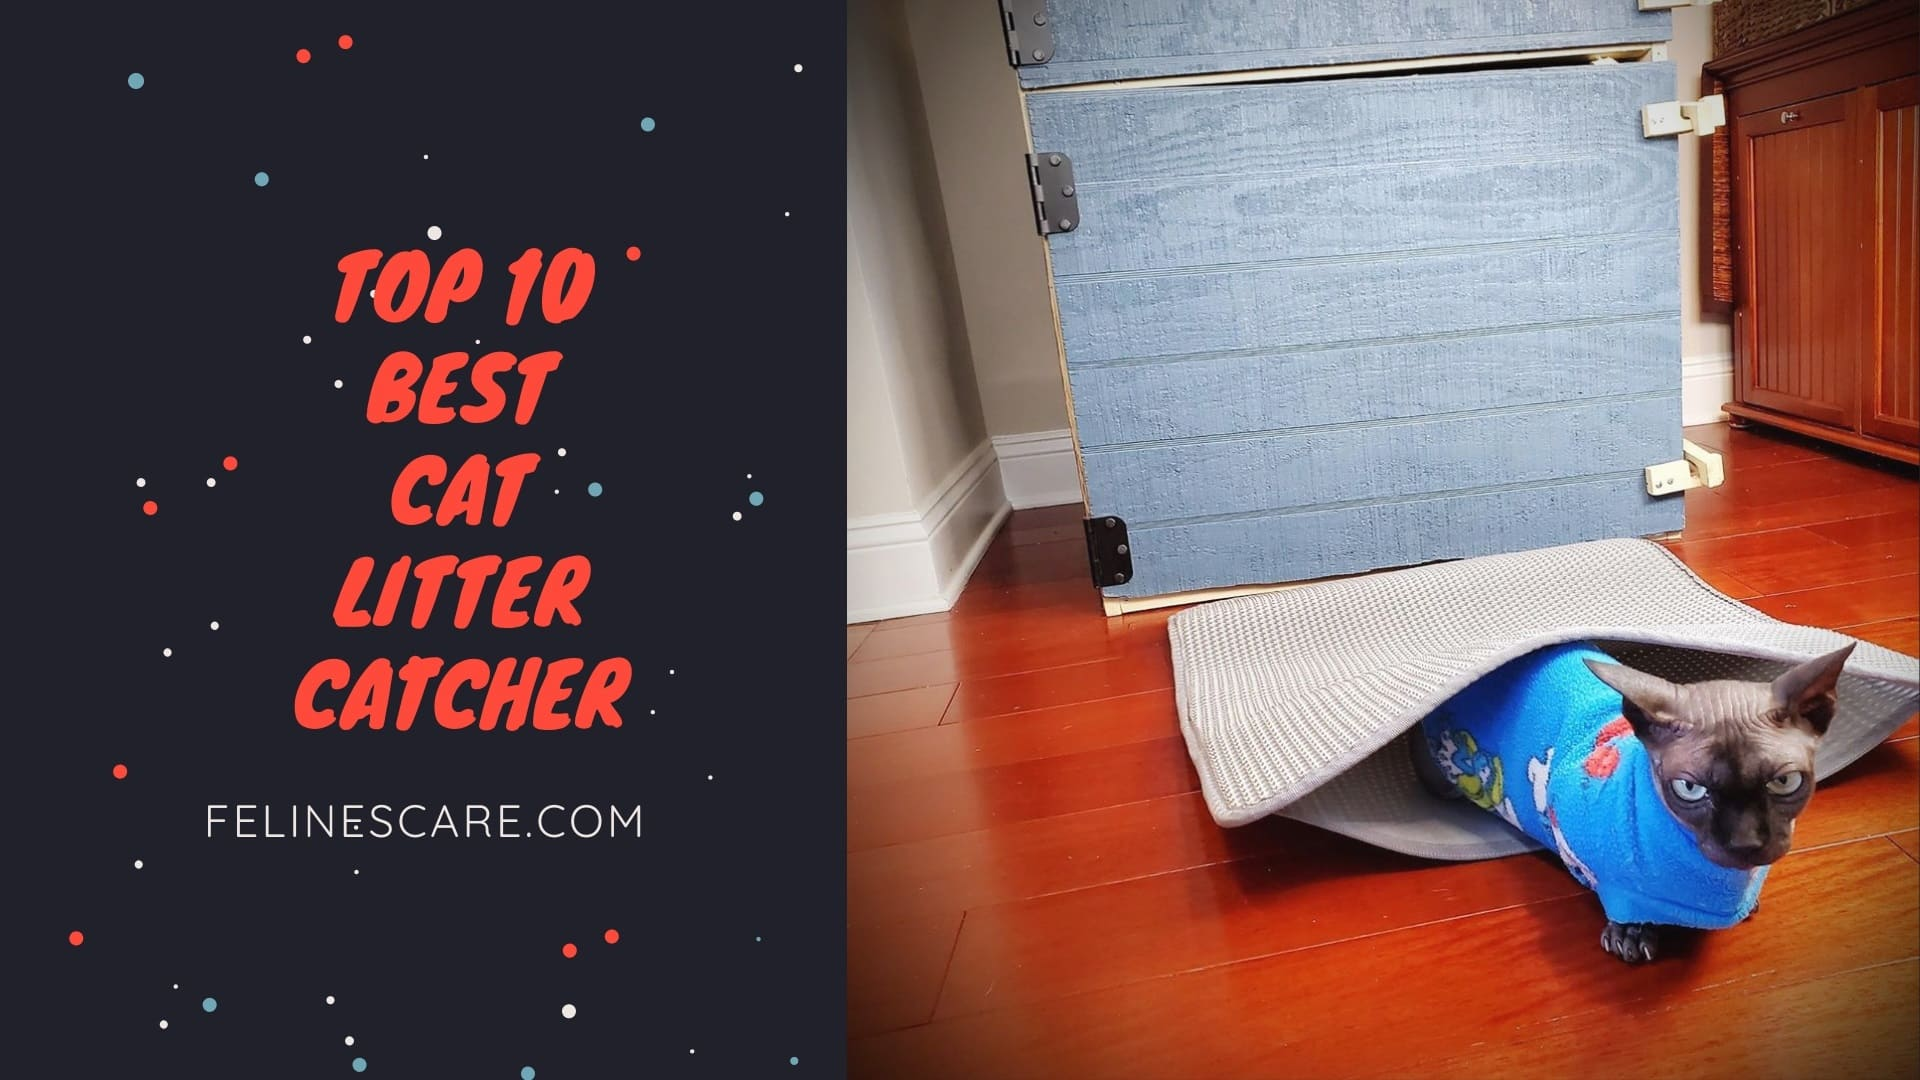 Top 10 Best Cat Litter Catcher [Updated December 2020]